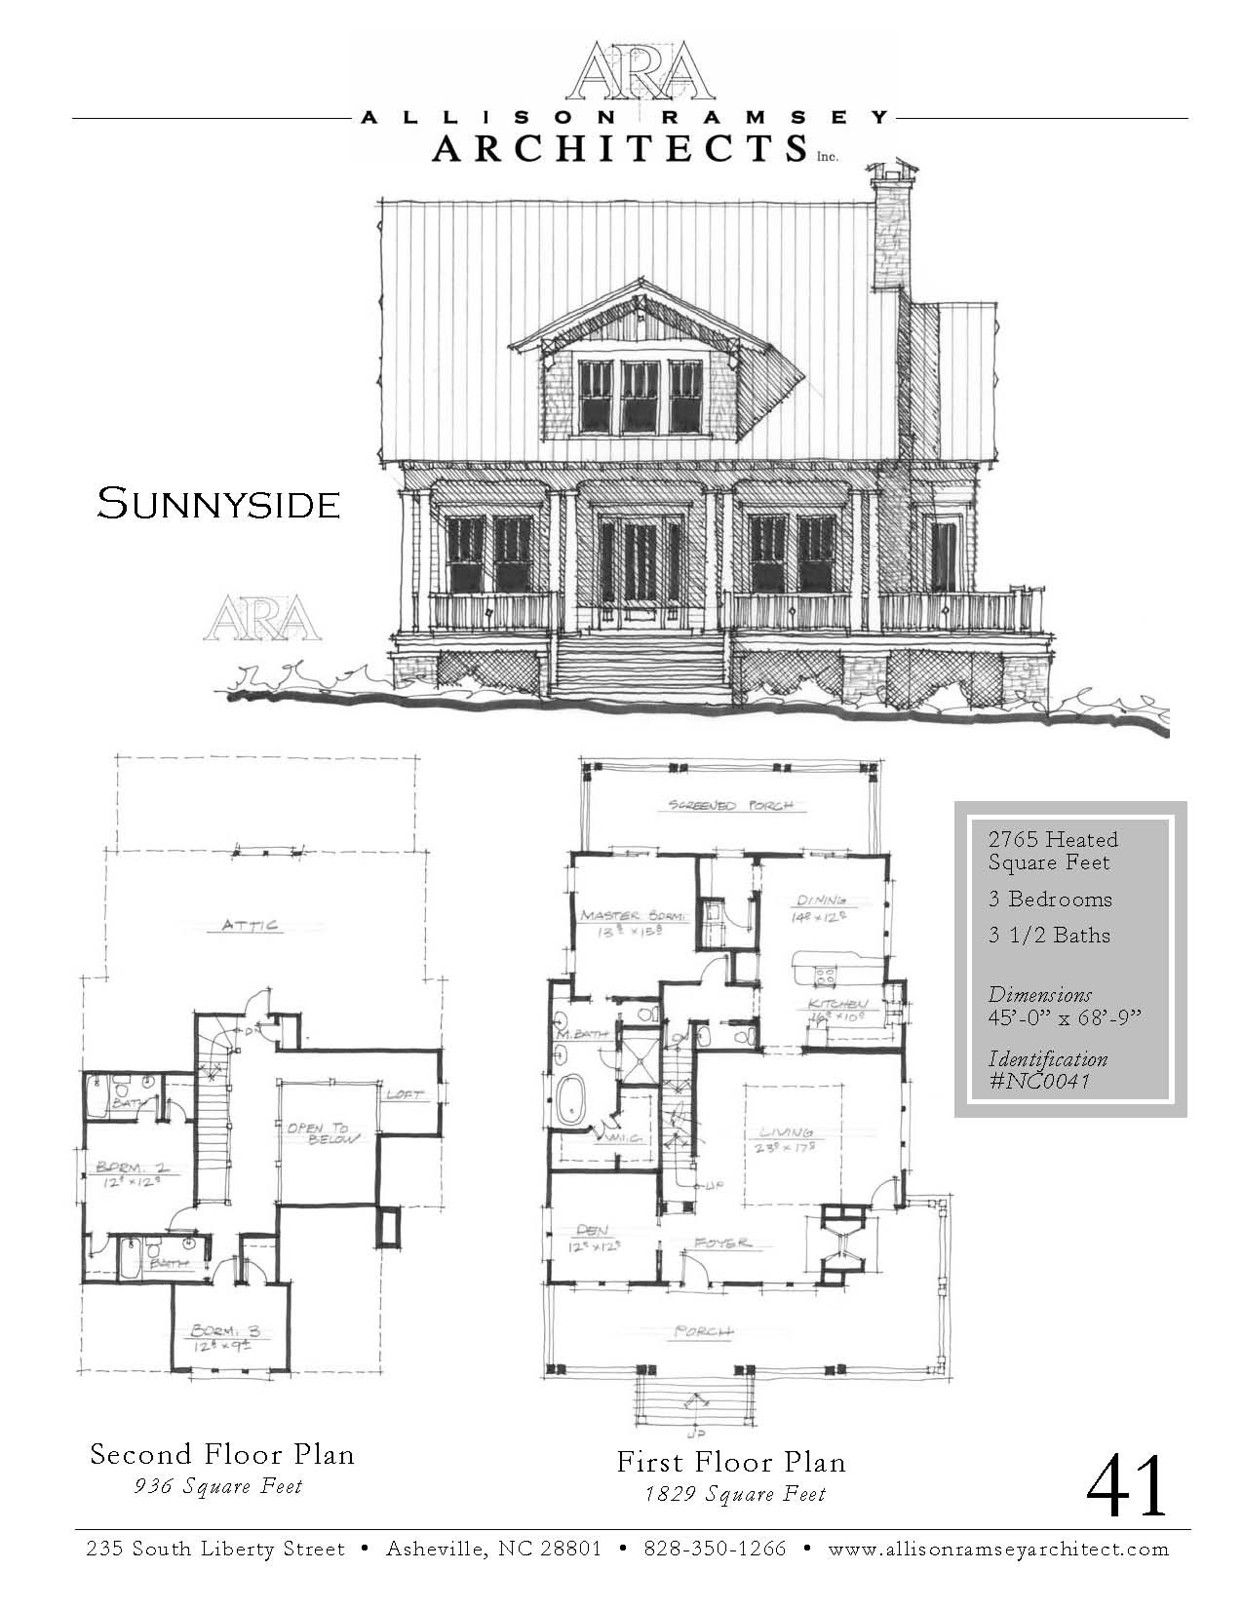 Master bedroom dimensions  This plan is  Heated Square Feet  Bedrooms and